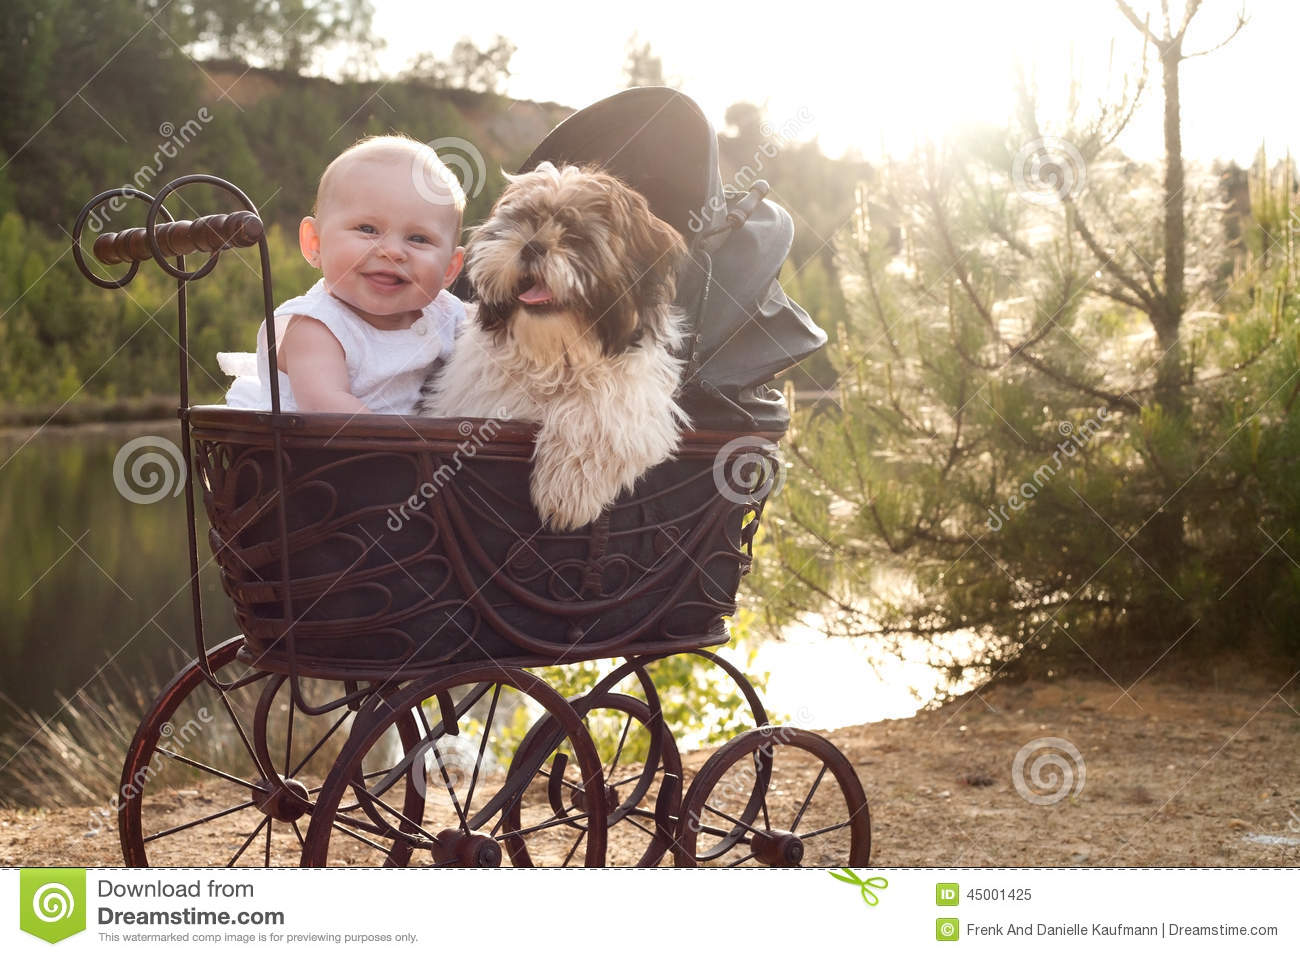 Baby and little puppy in a pram